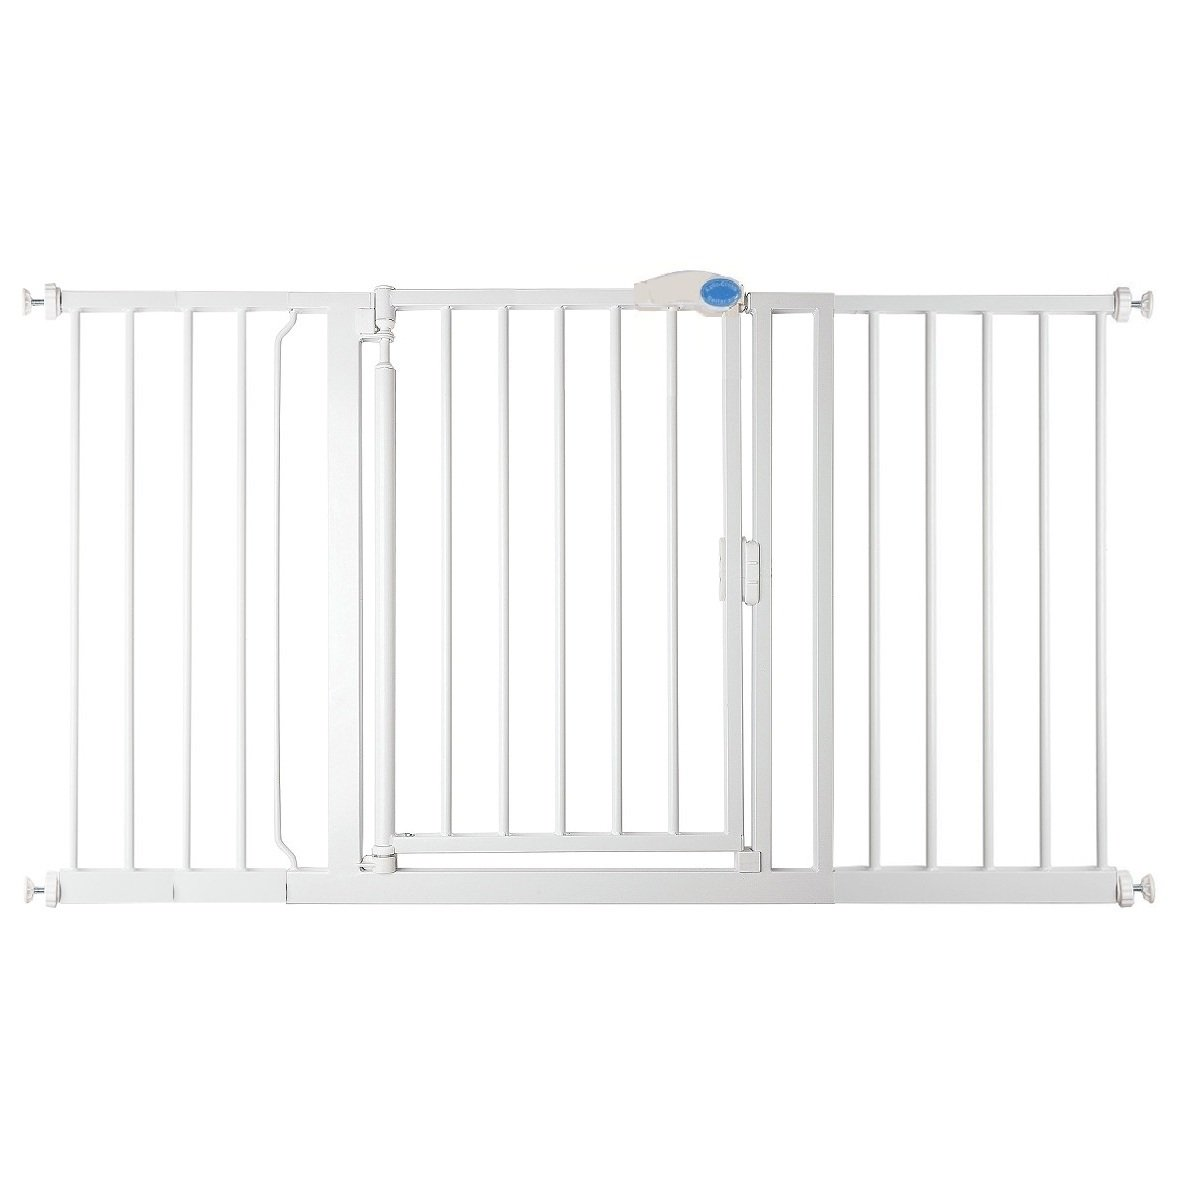 Bettacare Extra Narrow Stair Gate (61 to 66.5 cm) Bettacare Auto Extra Narrow